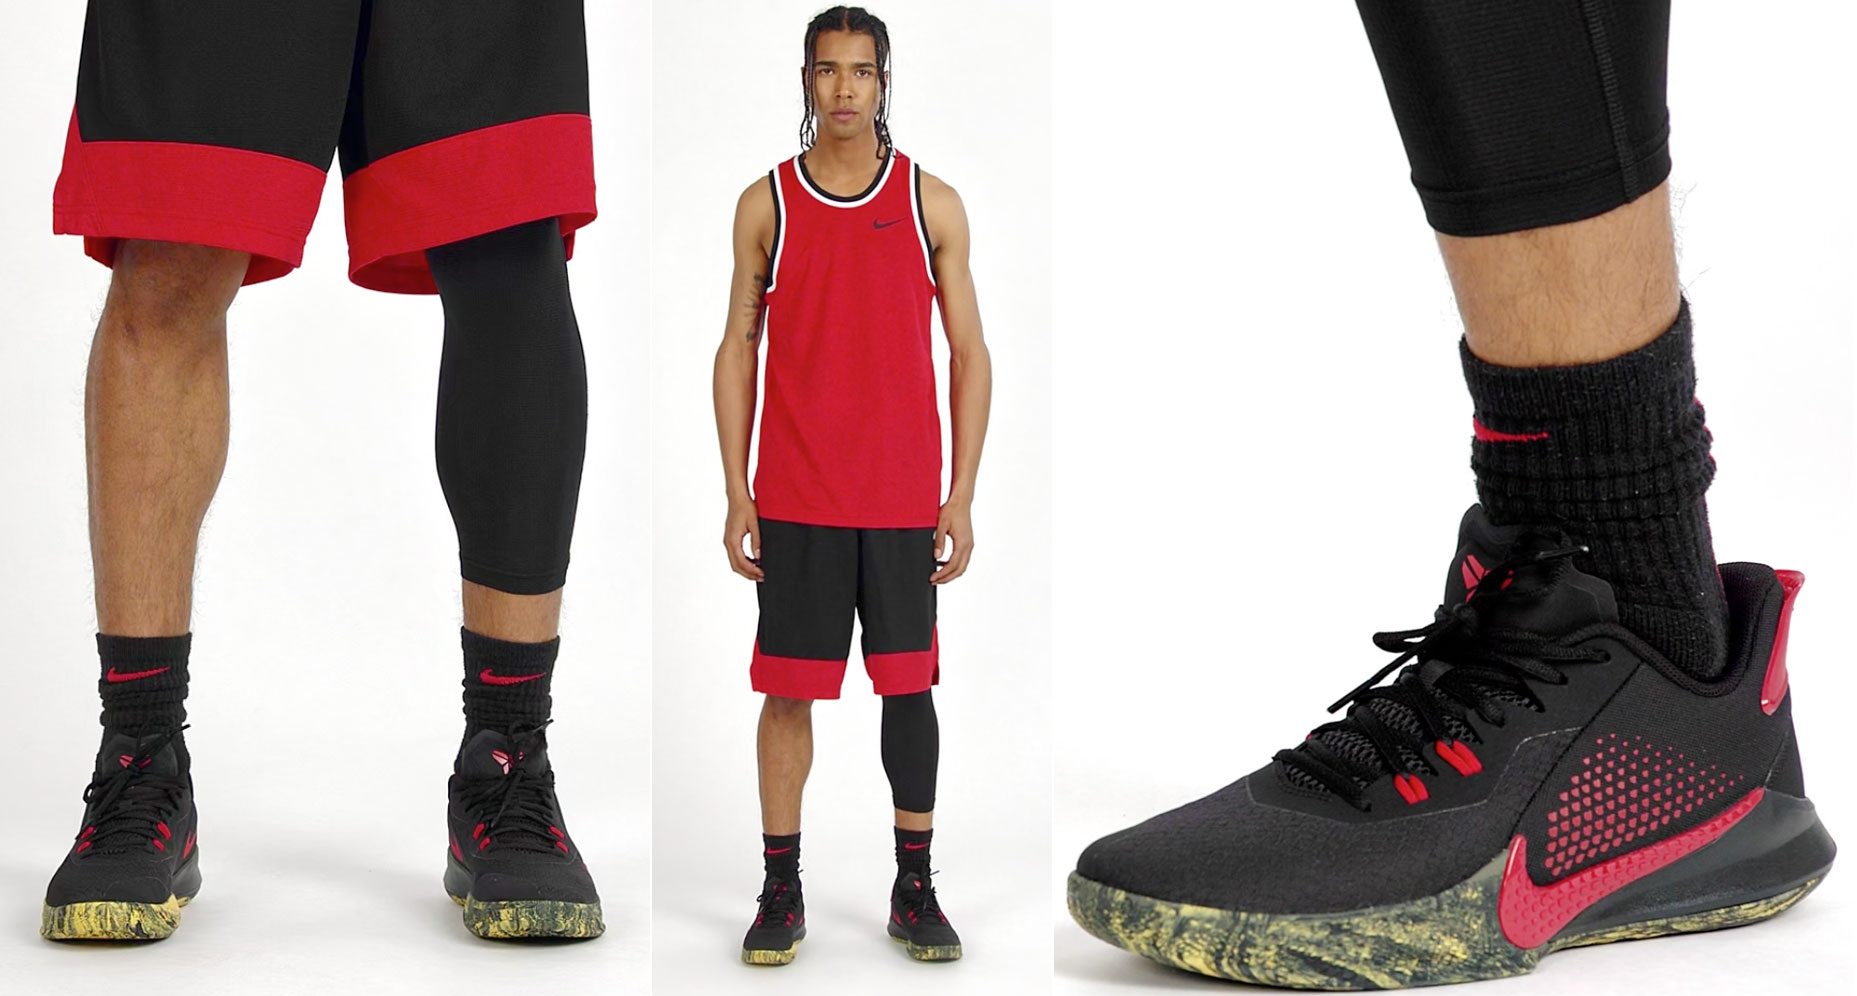 nike-kobe-mamba-fury-bruce-lee-black-red-yellow-outfit